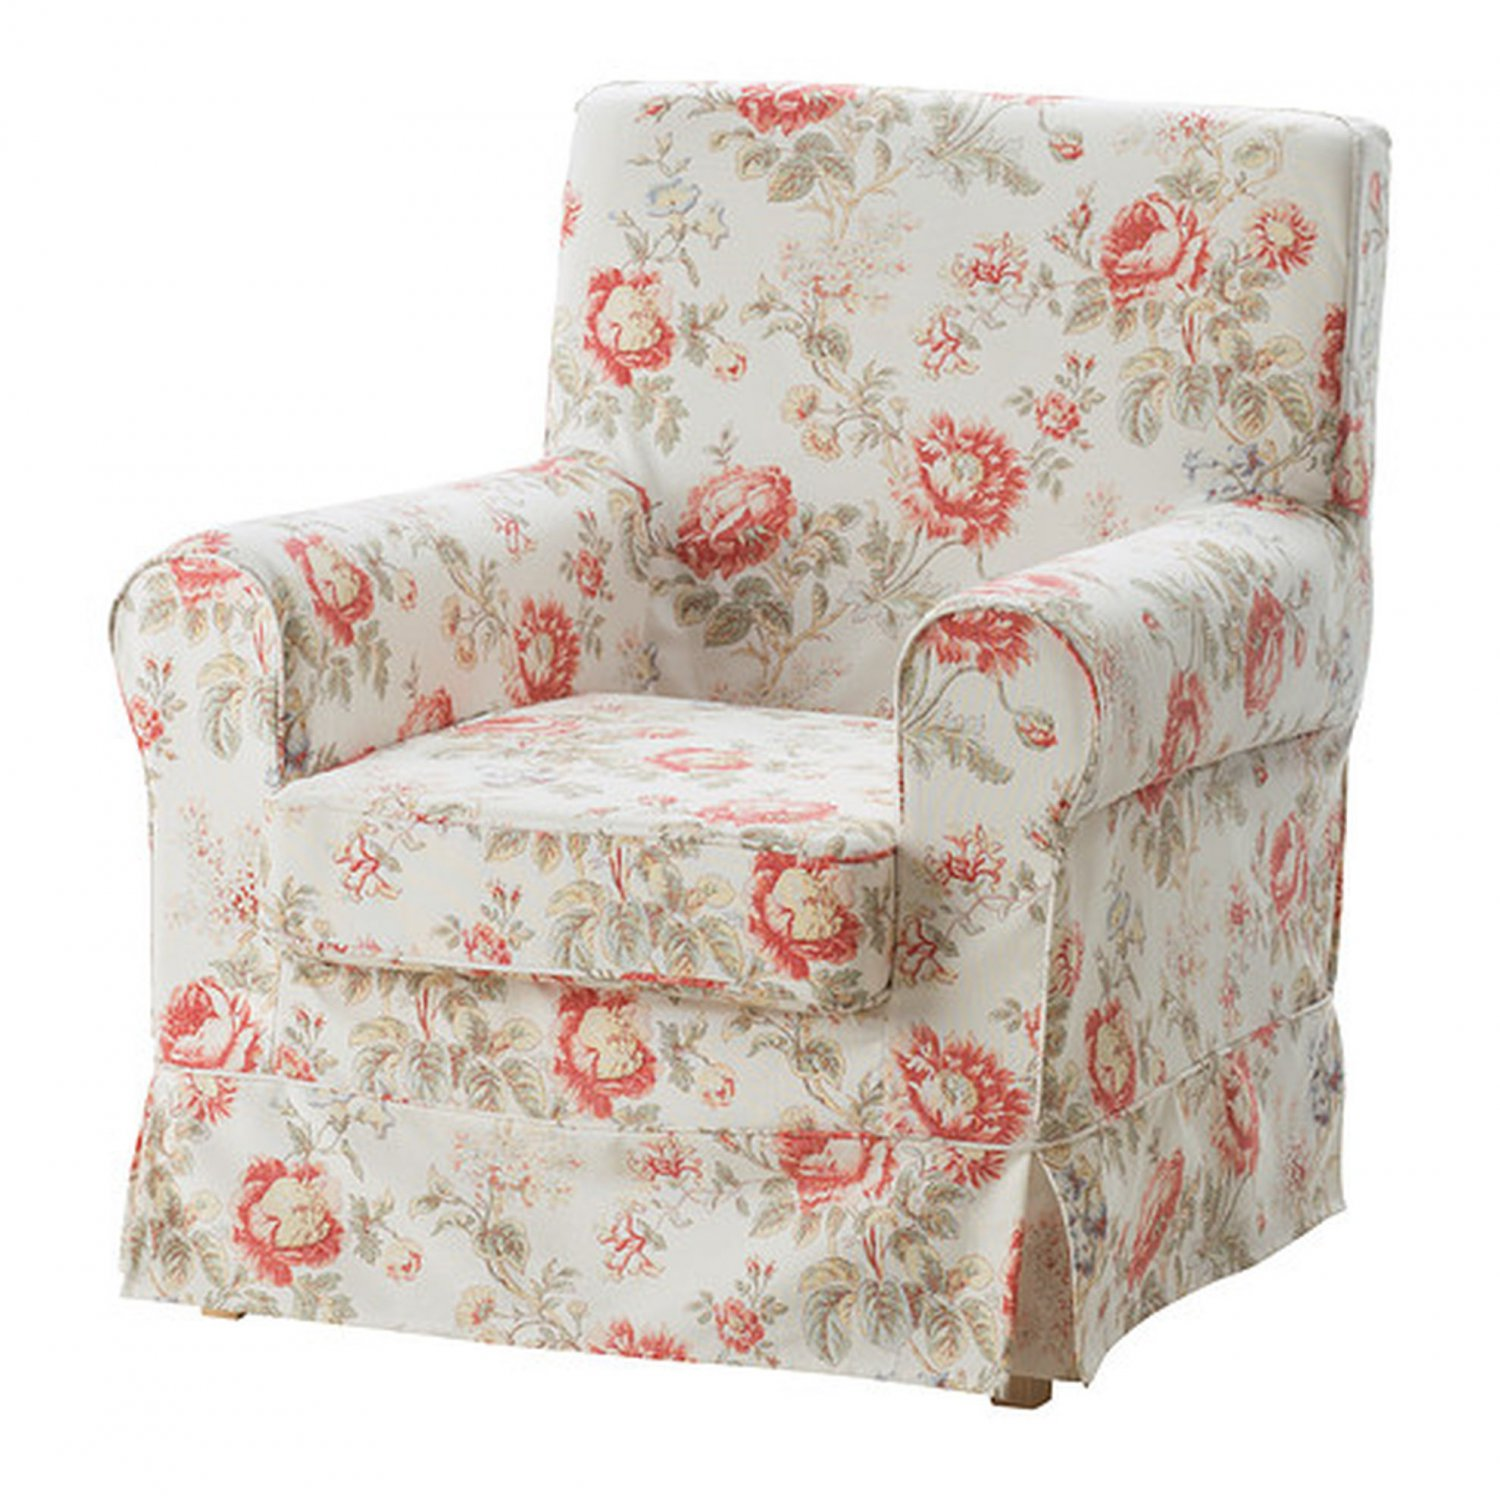 Chair Cover Patterns Ikea Ektorp Jennylund Armchair Slipcover Chair Cover Byvik Multi Floral Rose Peony Romantic